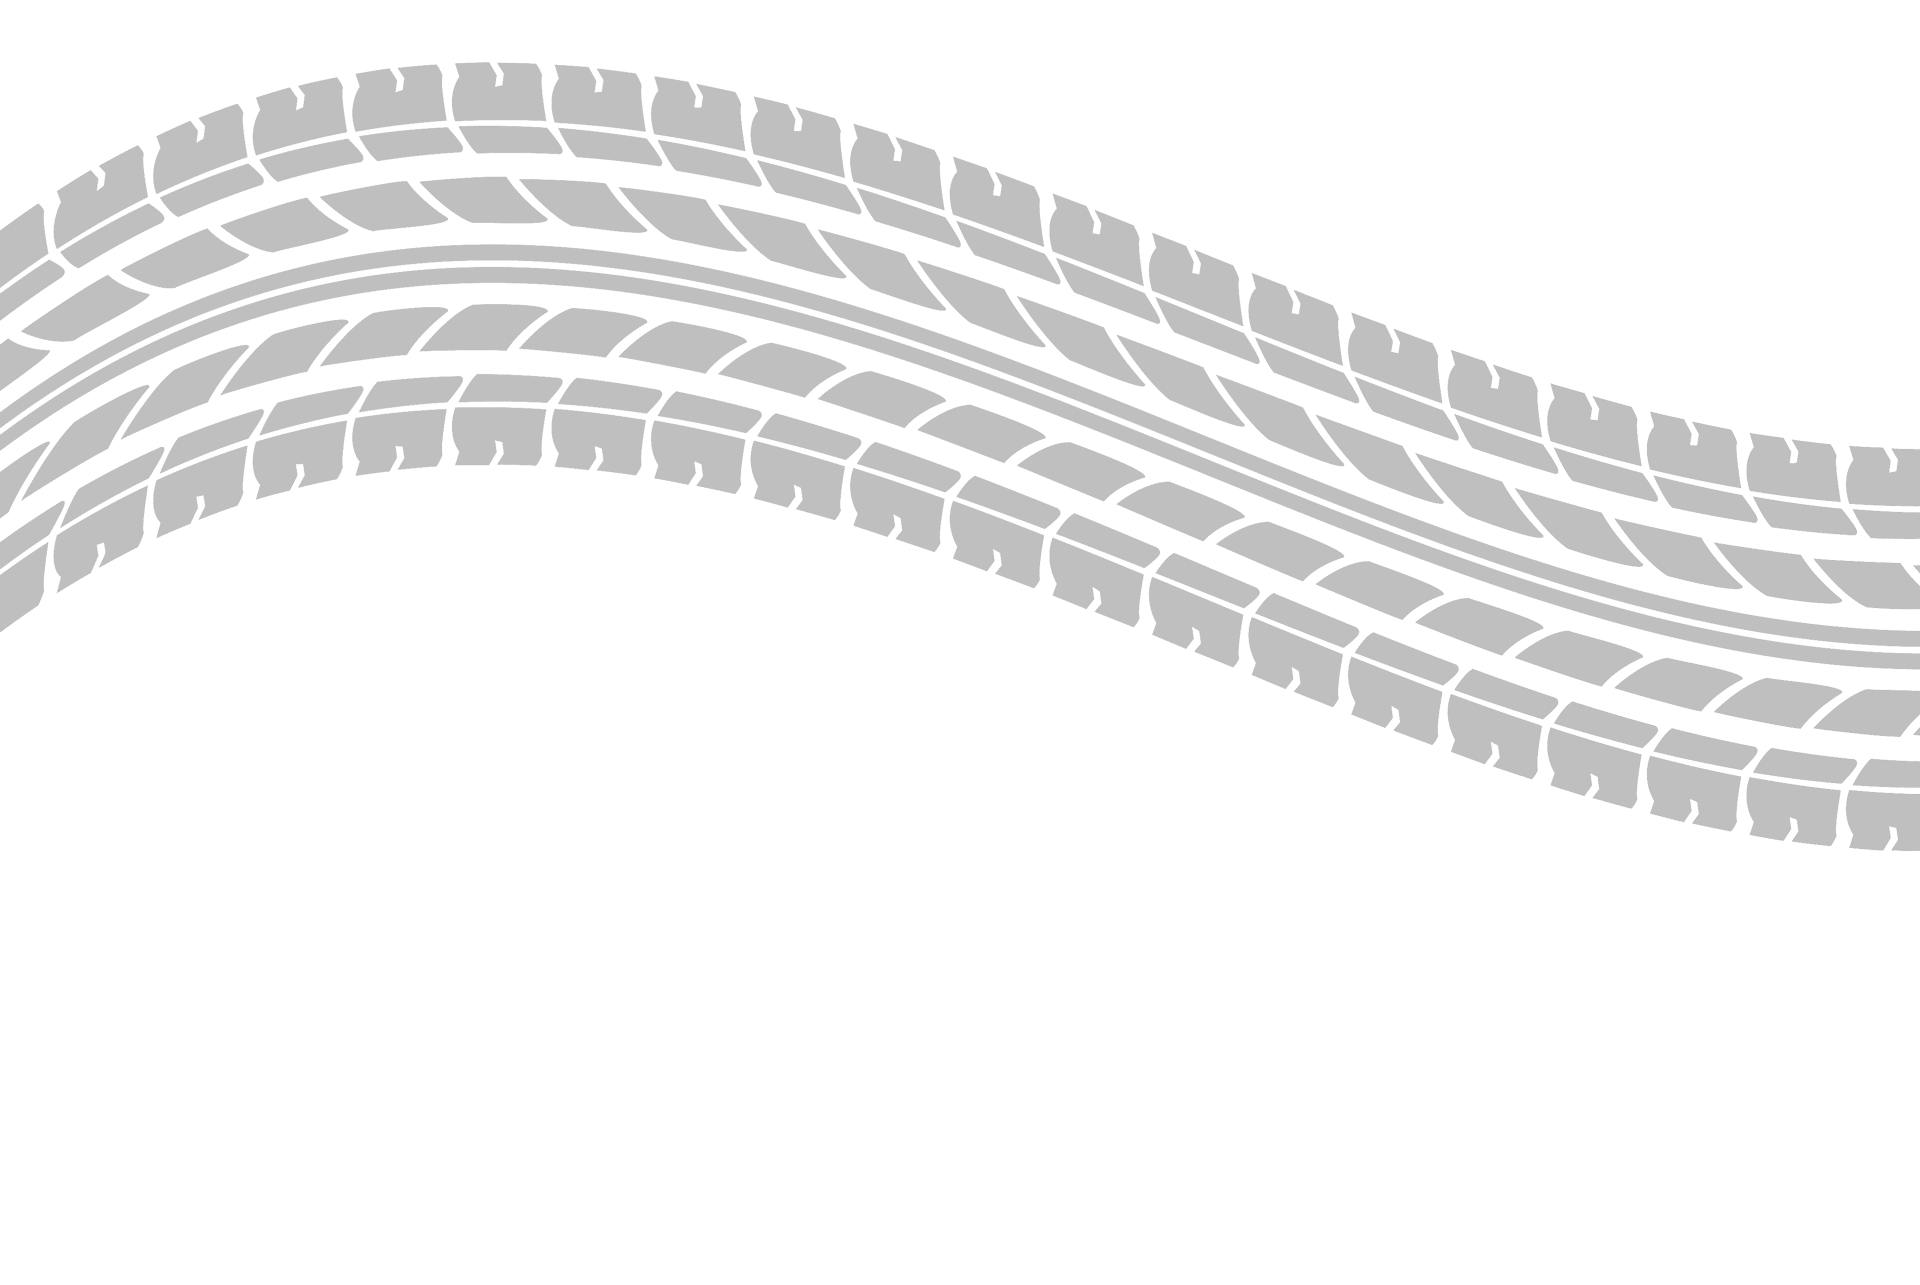 Mayfields bodyshop and collision. Tire tread png jpg transparent stock